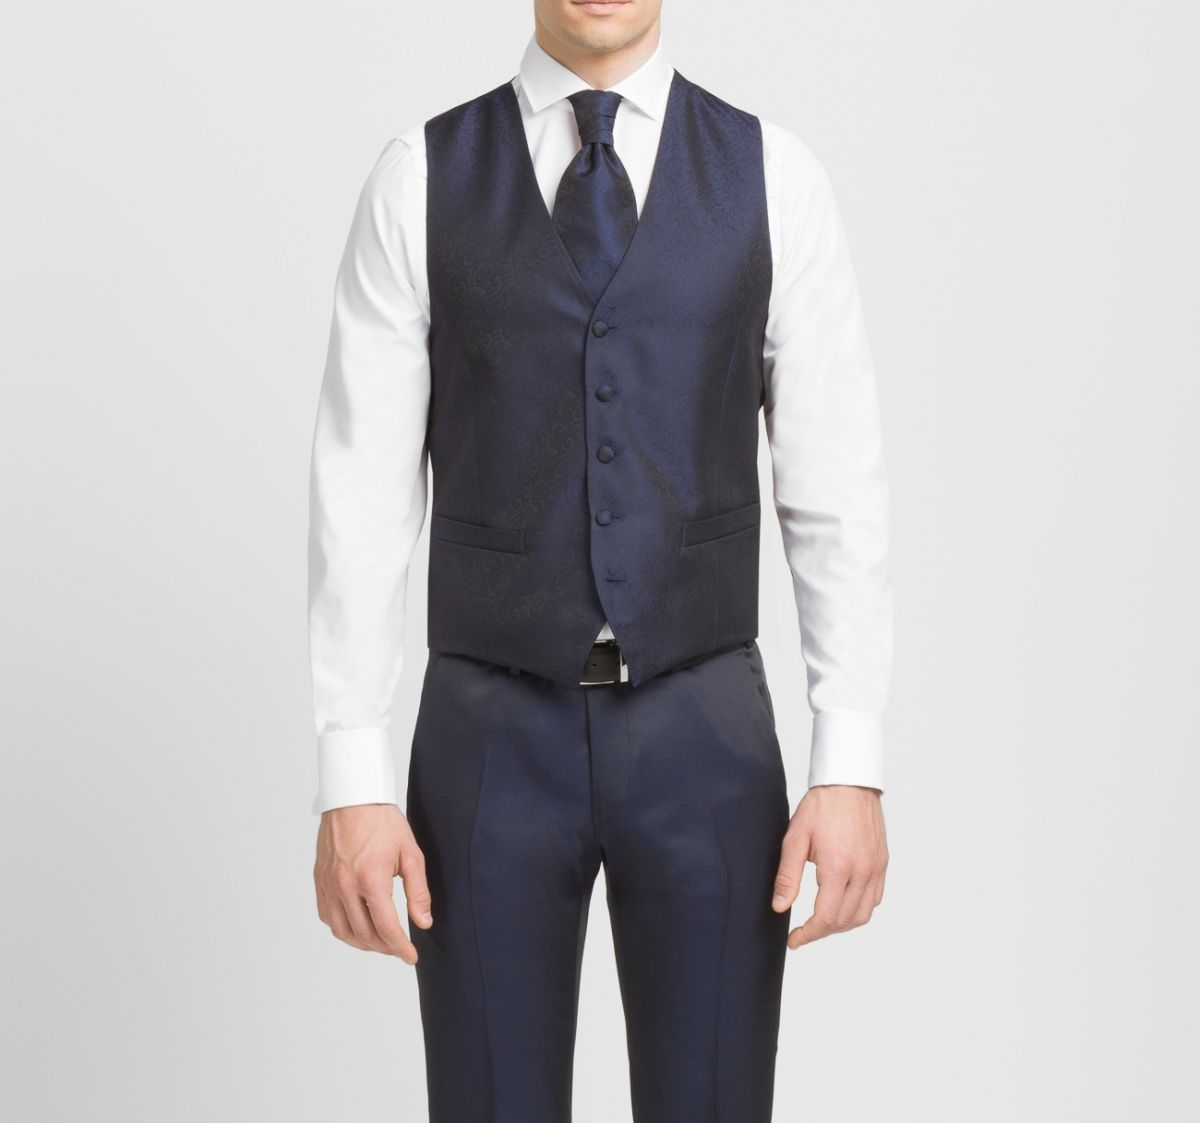 Blue Digel Men S Waistcoat With Tie And Pochette Wedding Vest Men S Waistcoat Waistcoat